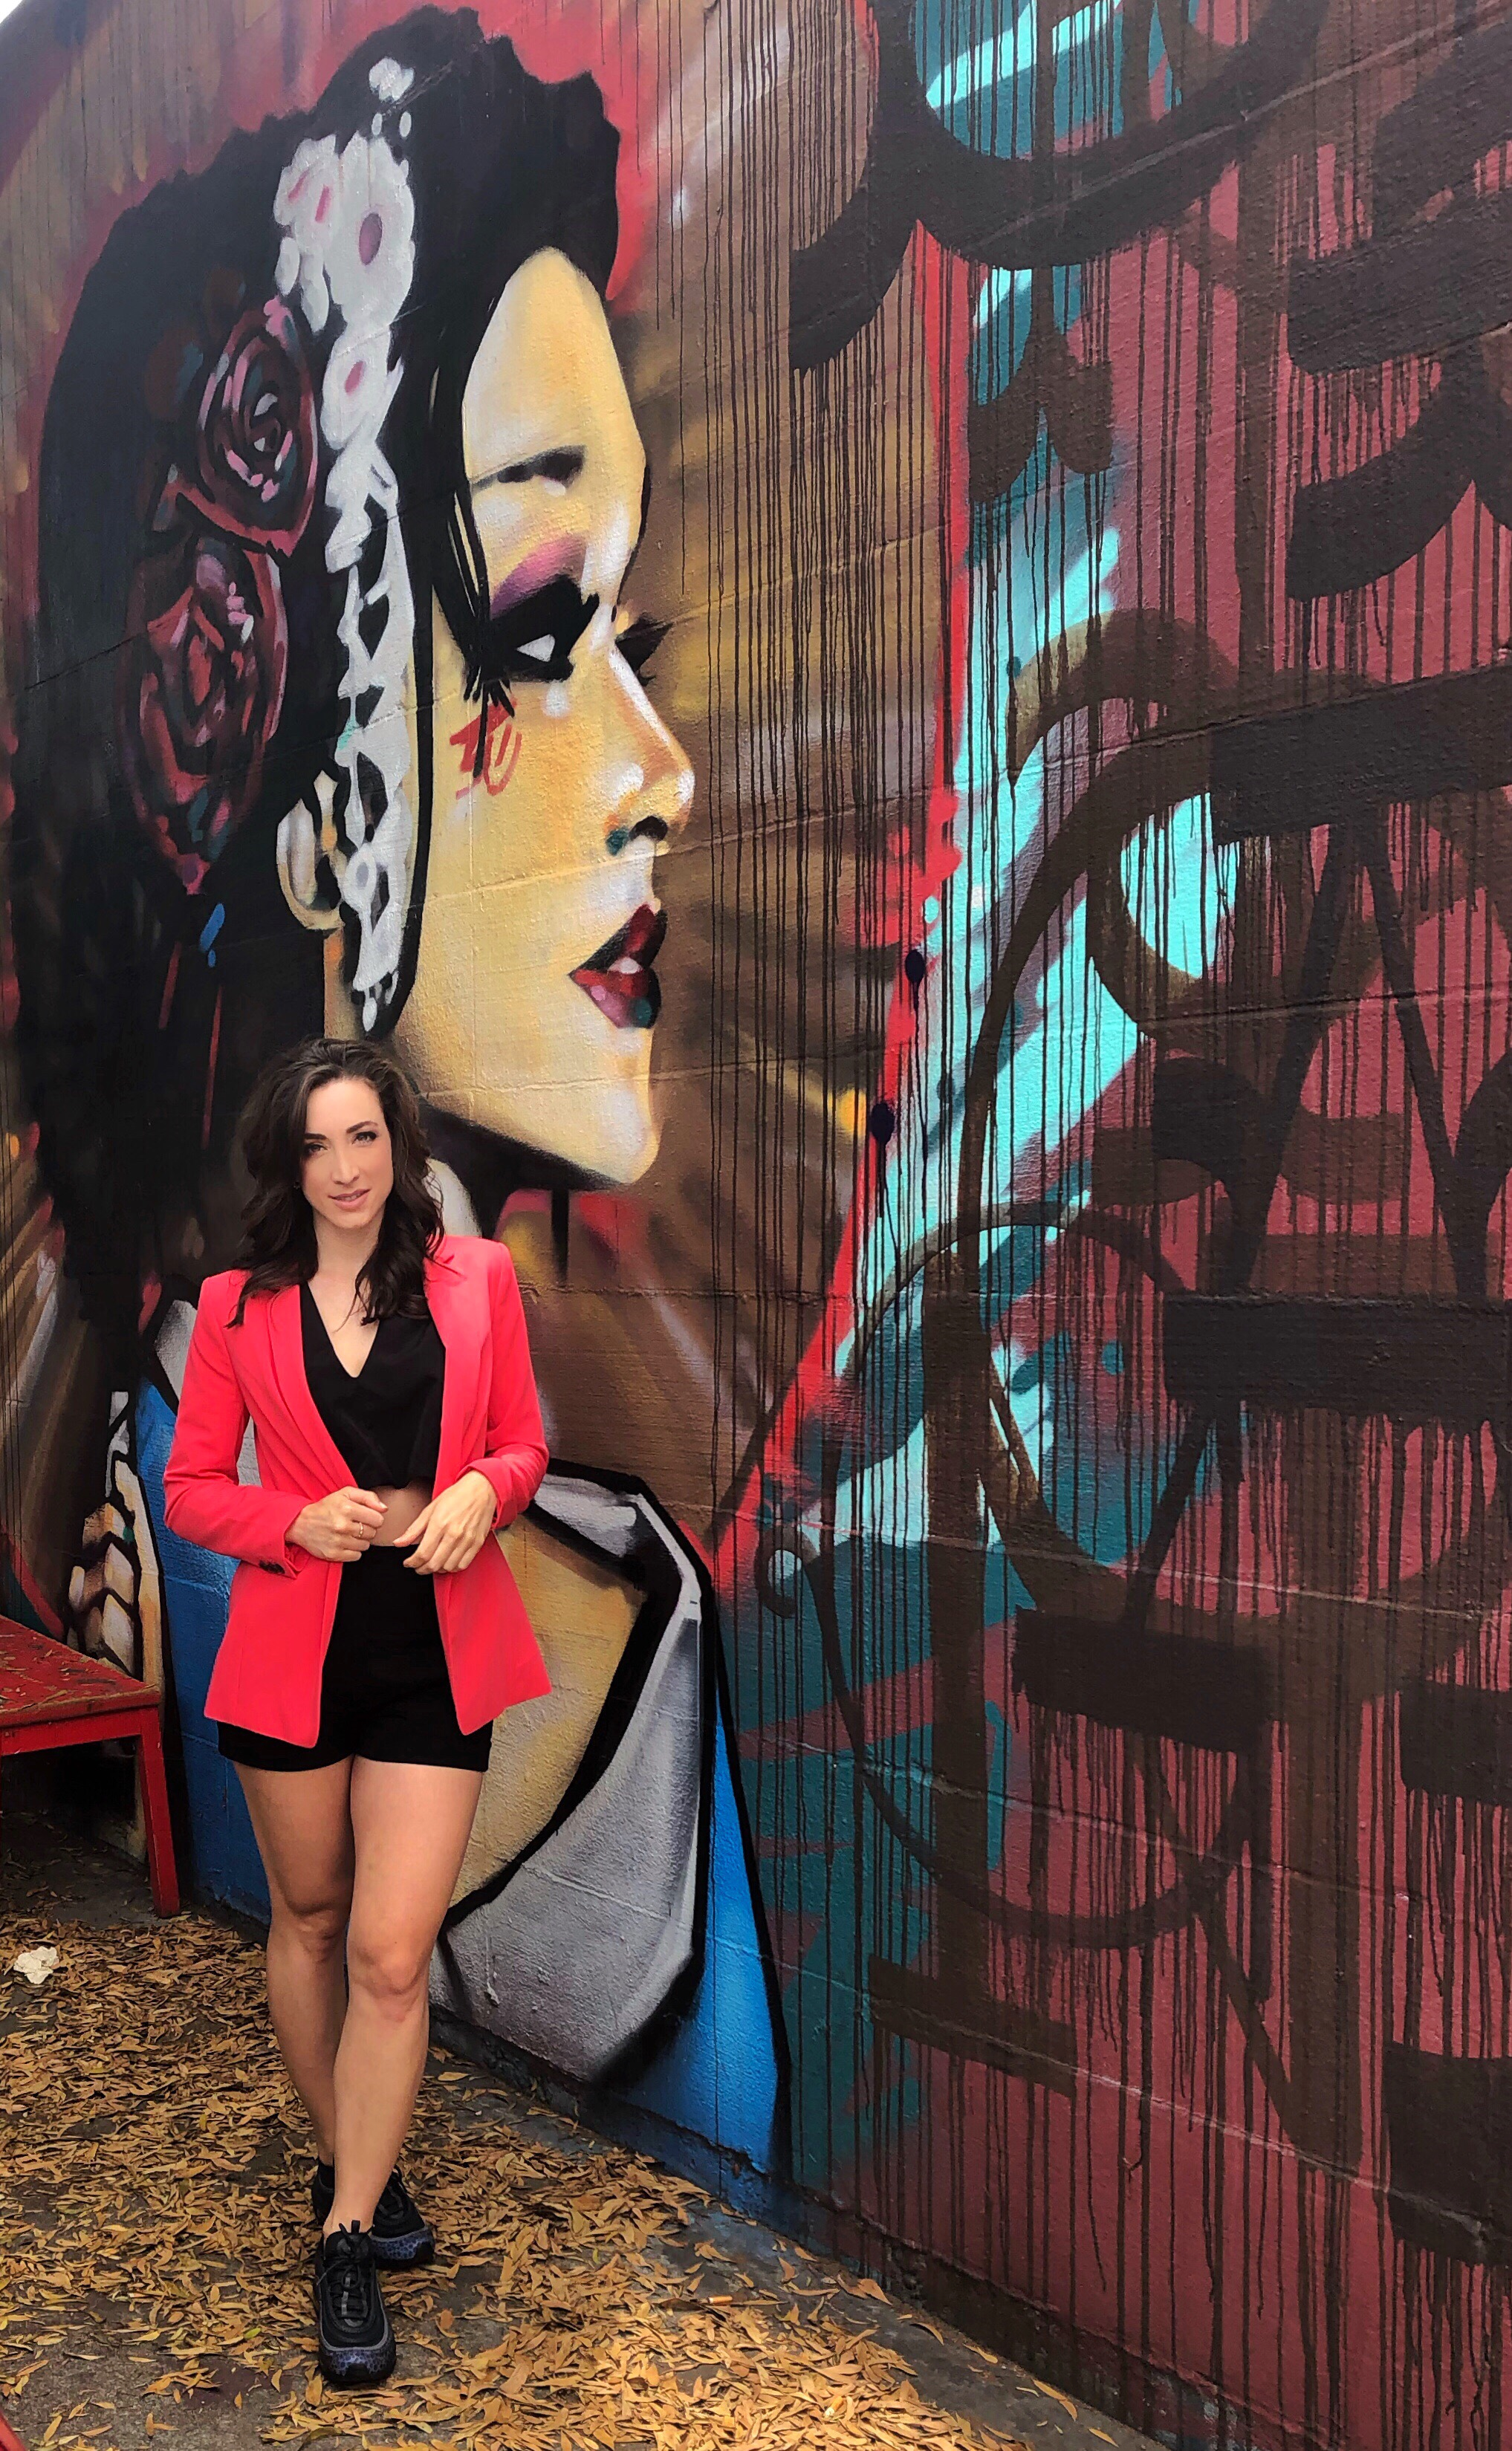 Worthington Coral Blazer from JCPenney. Air Max 97's in San Diego. Art Mural in Normal Heights, San Diego, California.